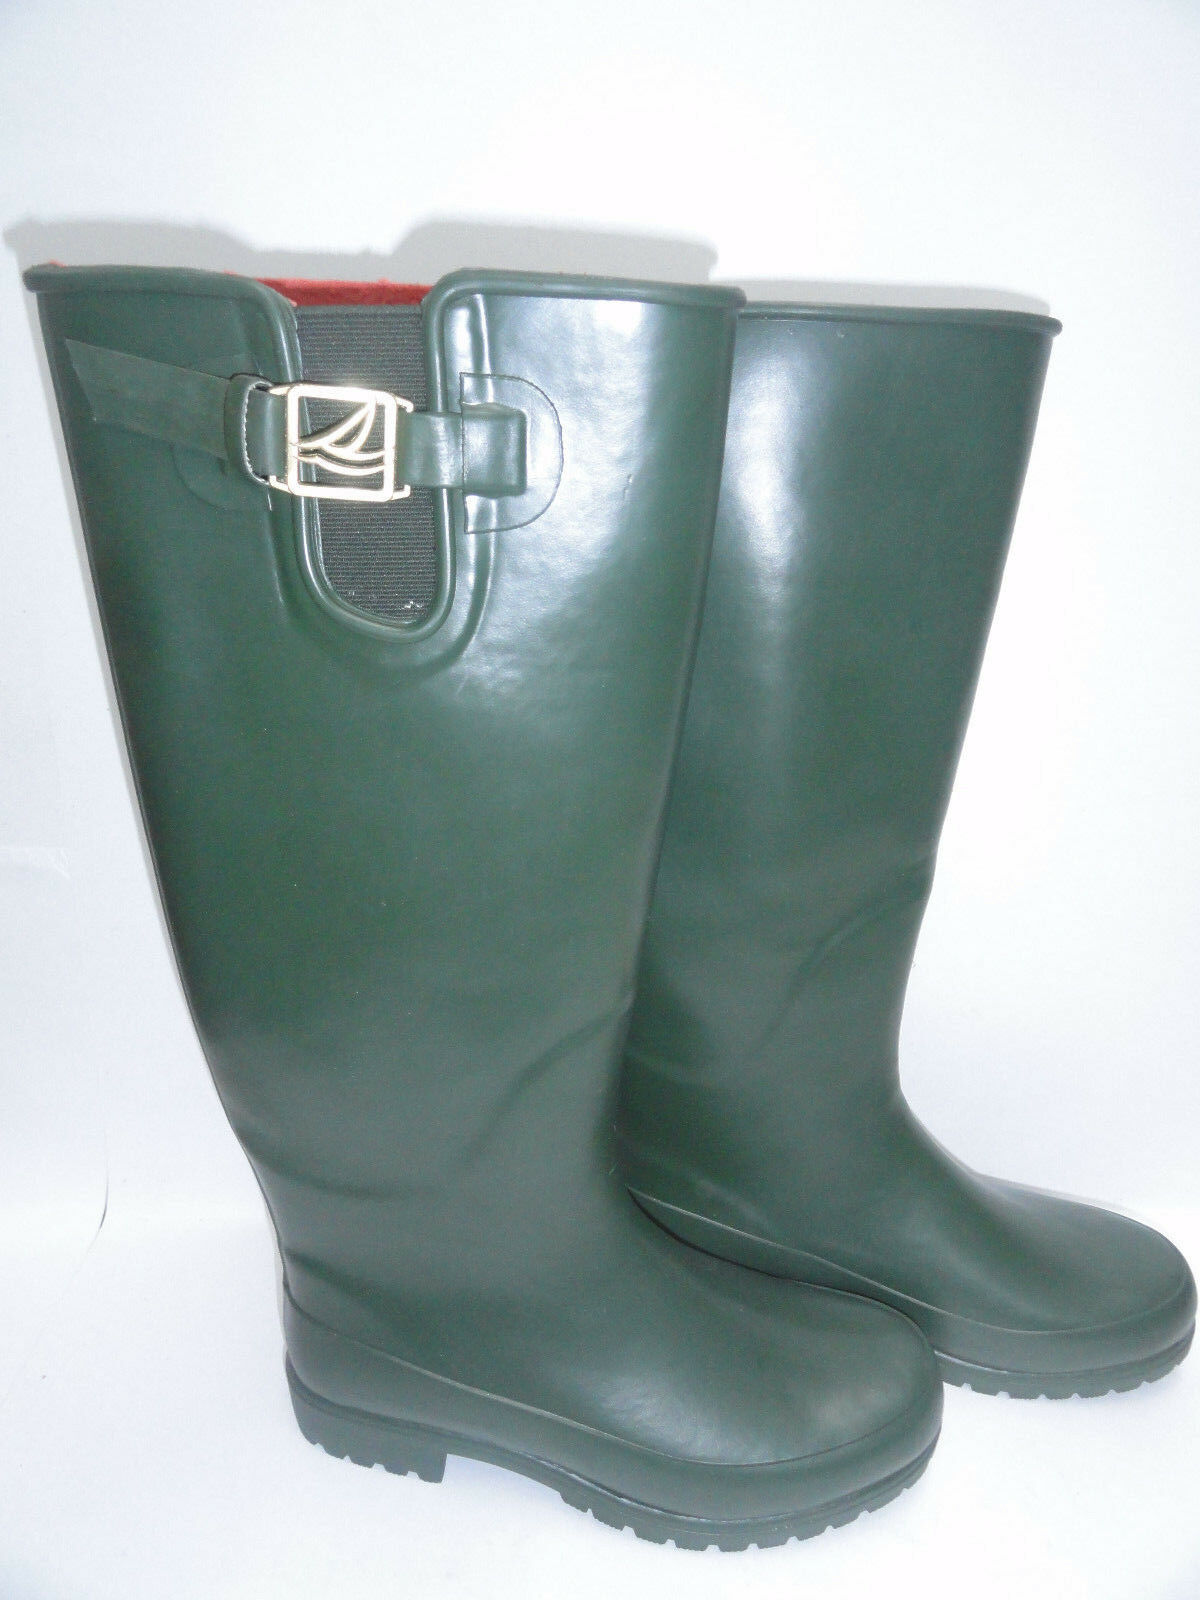 Donna Sperry Top-Sider Pelican Too Waterproof Rubber Stivali Olive Green/Nero